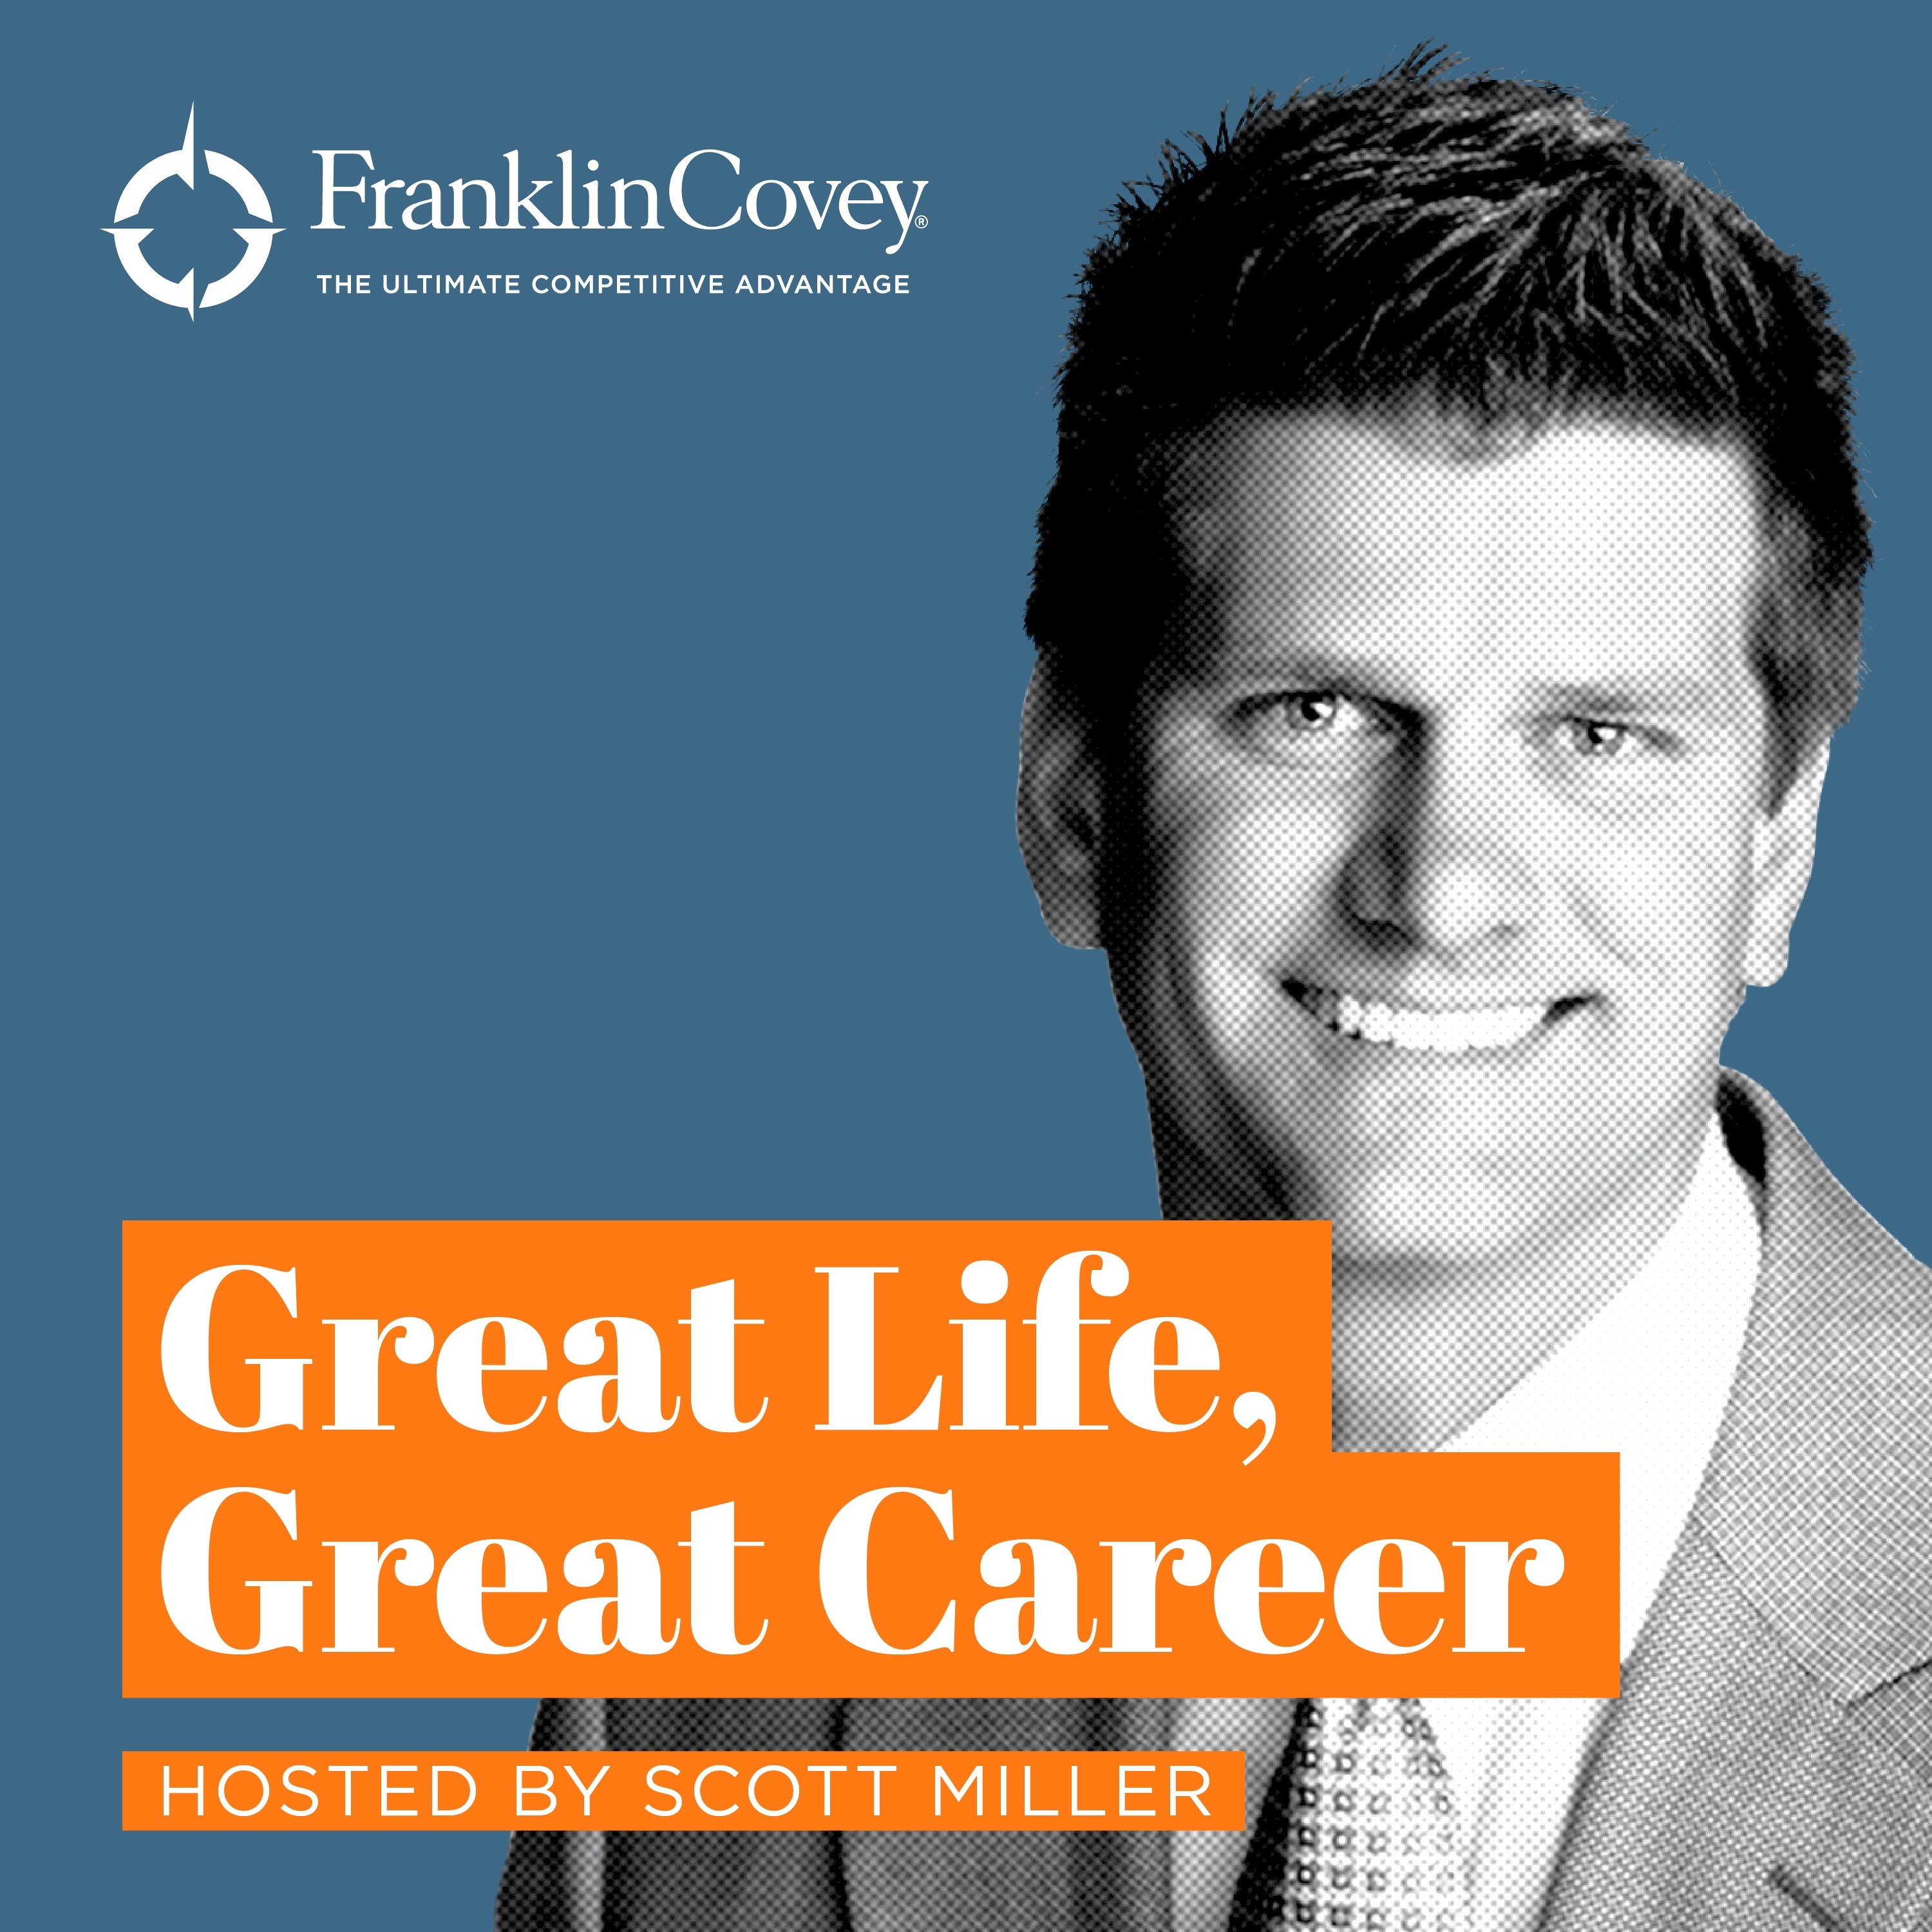 Episode #27: Leading Loyalty: Cracking the Code to Customer Devotion with author Shawn Moon